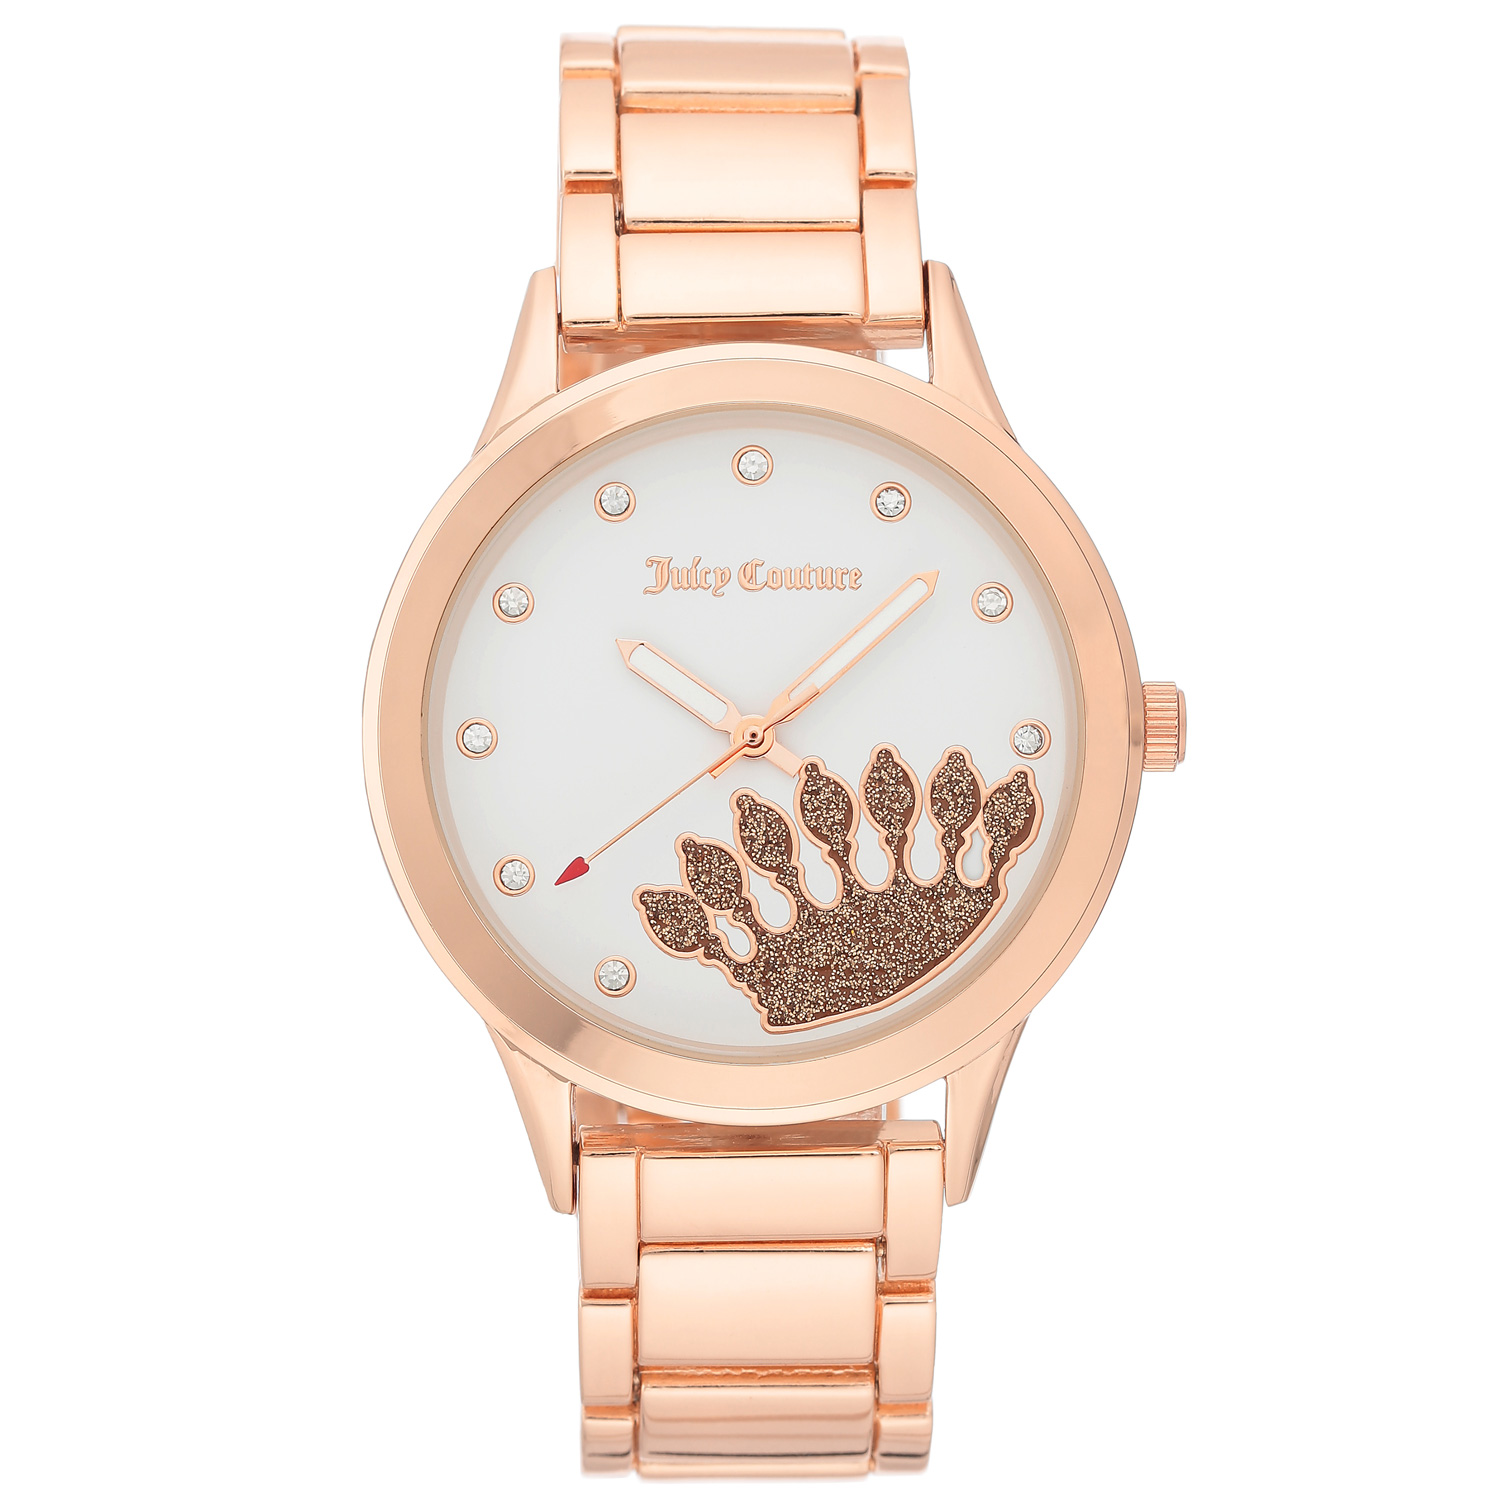 Juicy Couture Watch JC/1126WTRG Rose Gold